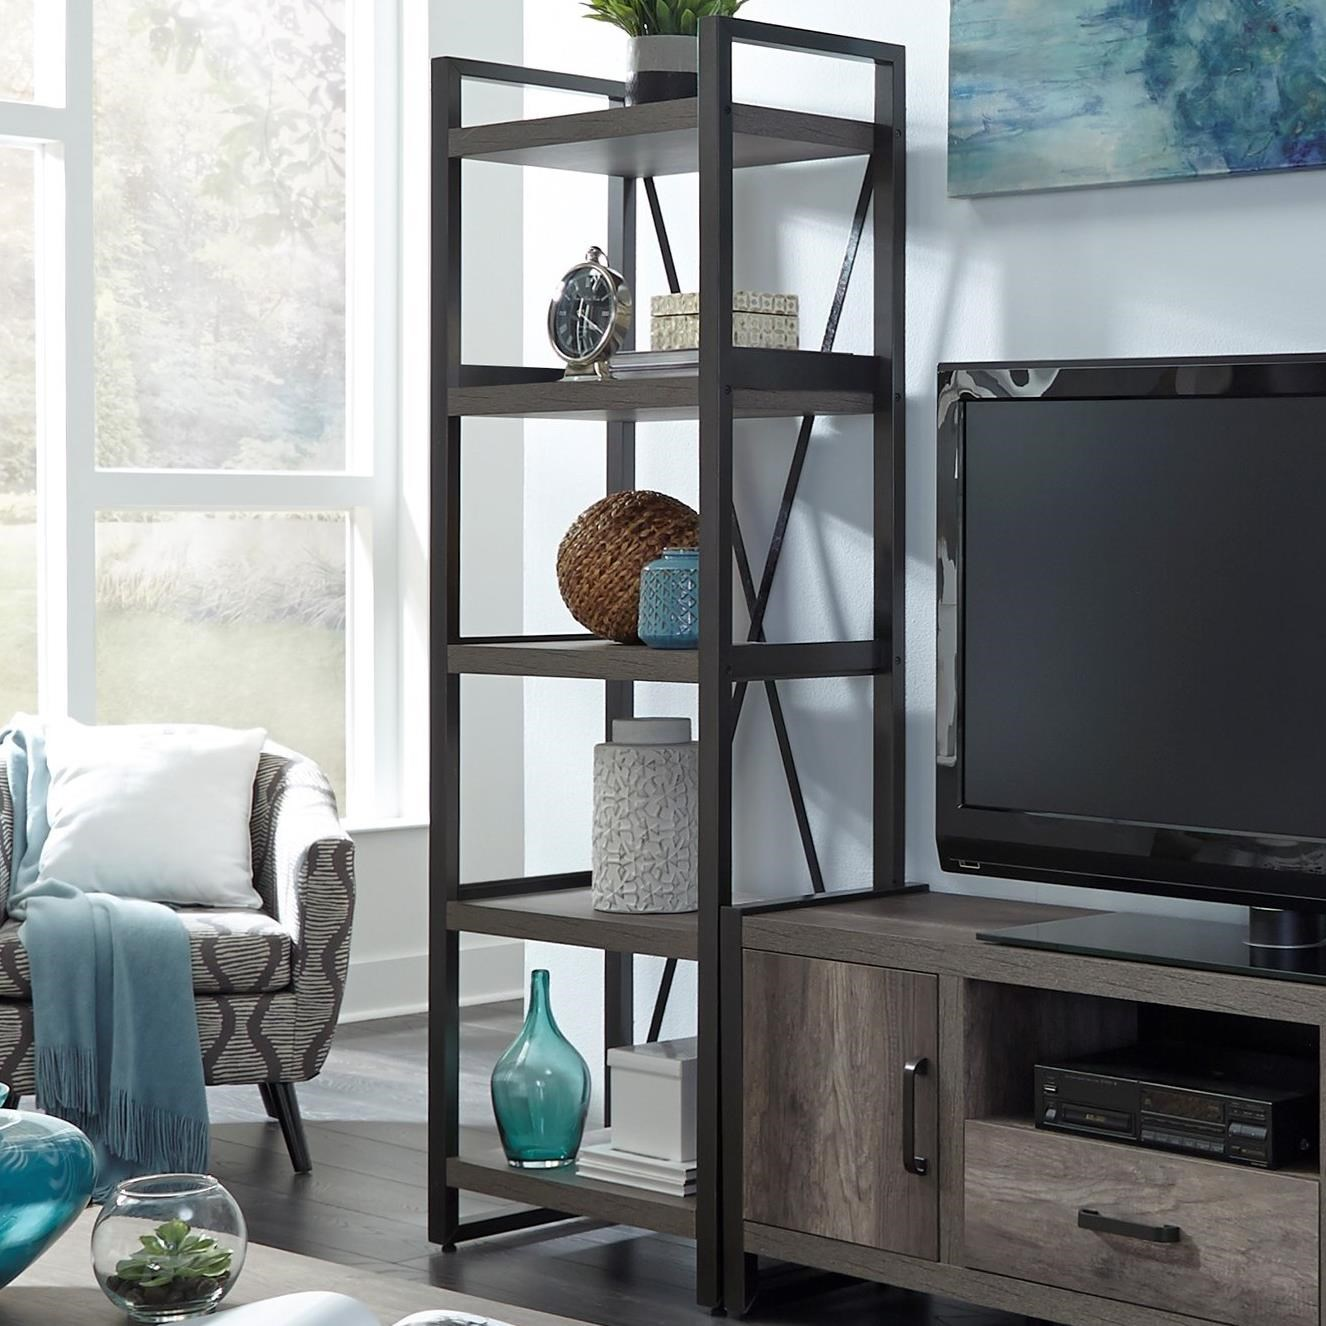 Contemporary Tall Pier Unit with Floating Shelf Design